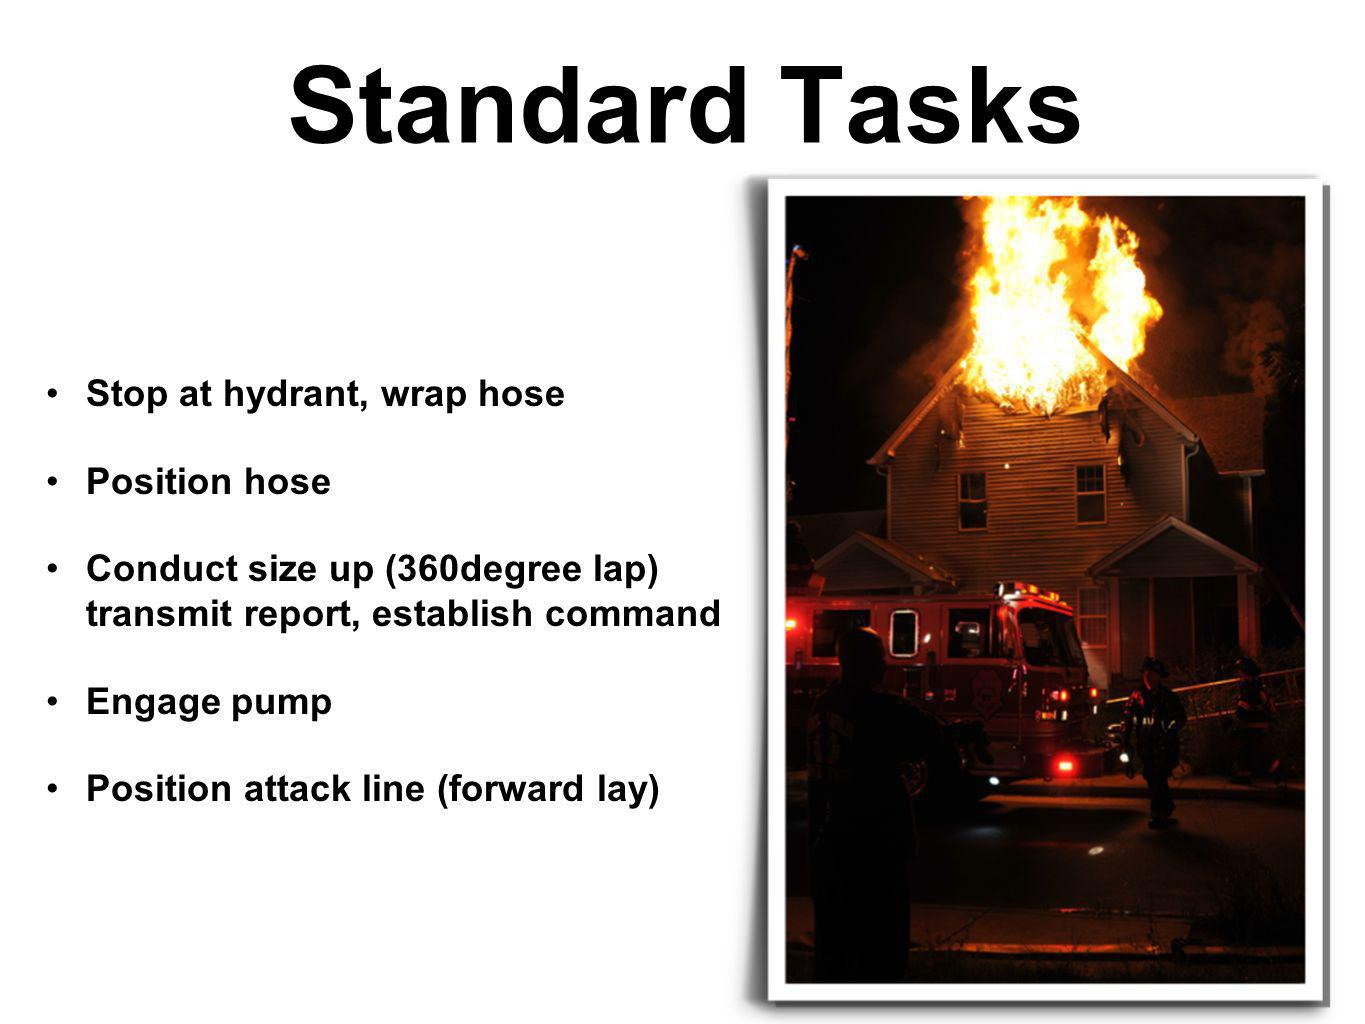 Standard Tasks Stop at hydrant, wrap hose Position hose Conduct size up (360degree lap) transmit report, establish command Engage pump Position attack